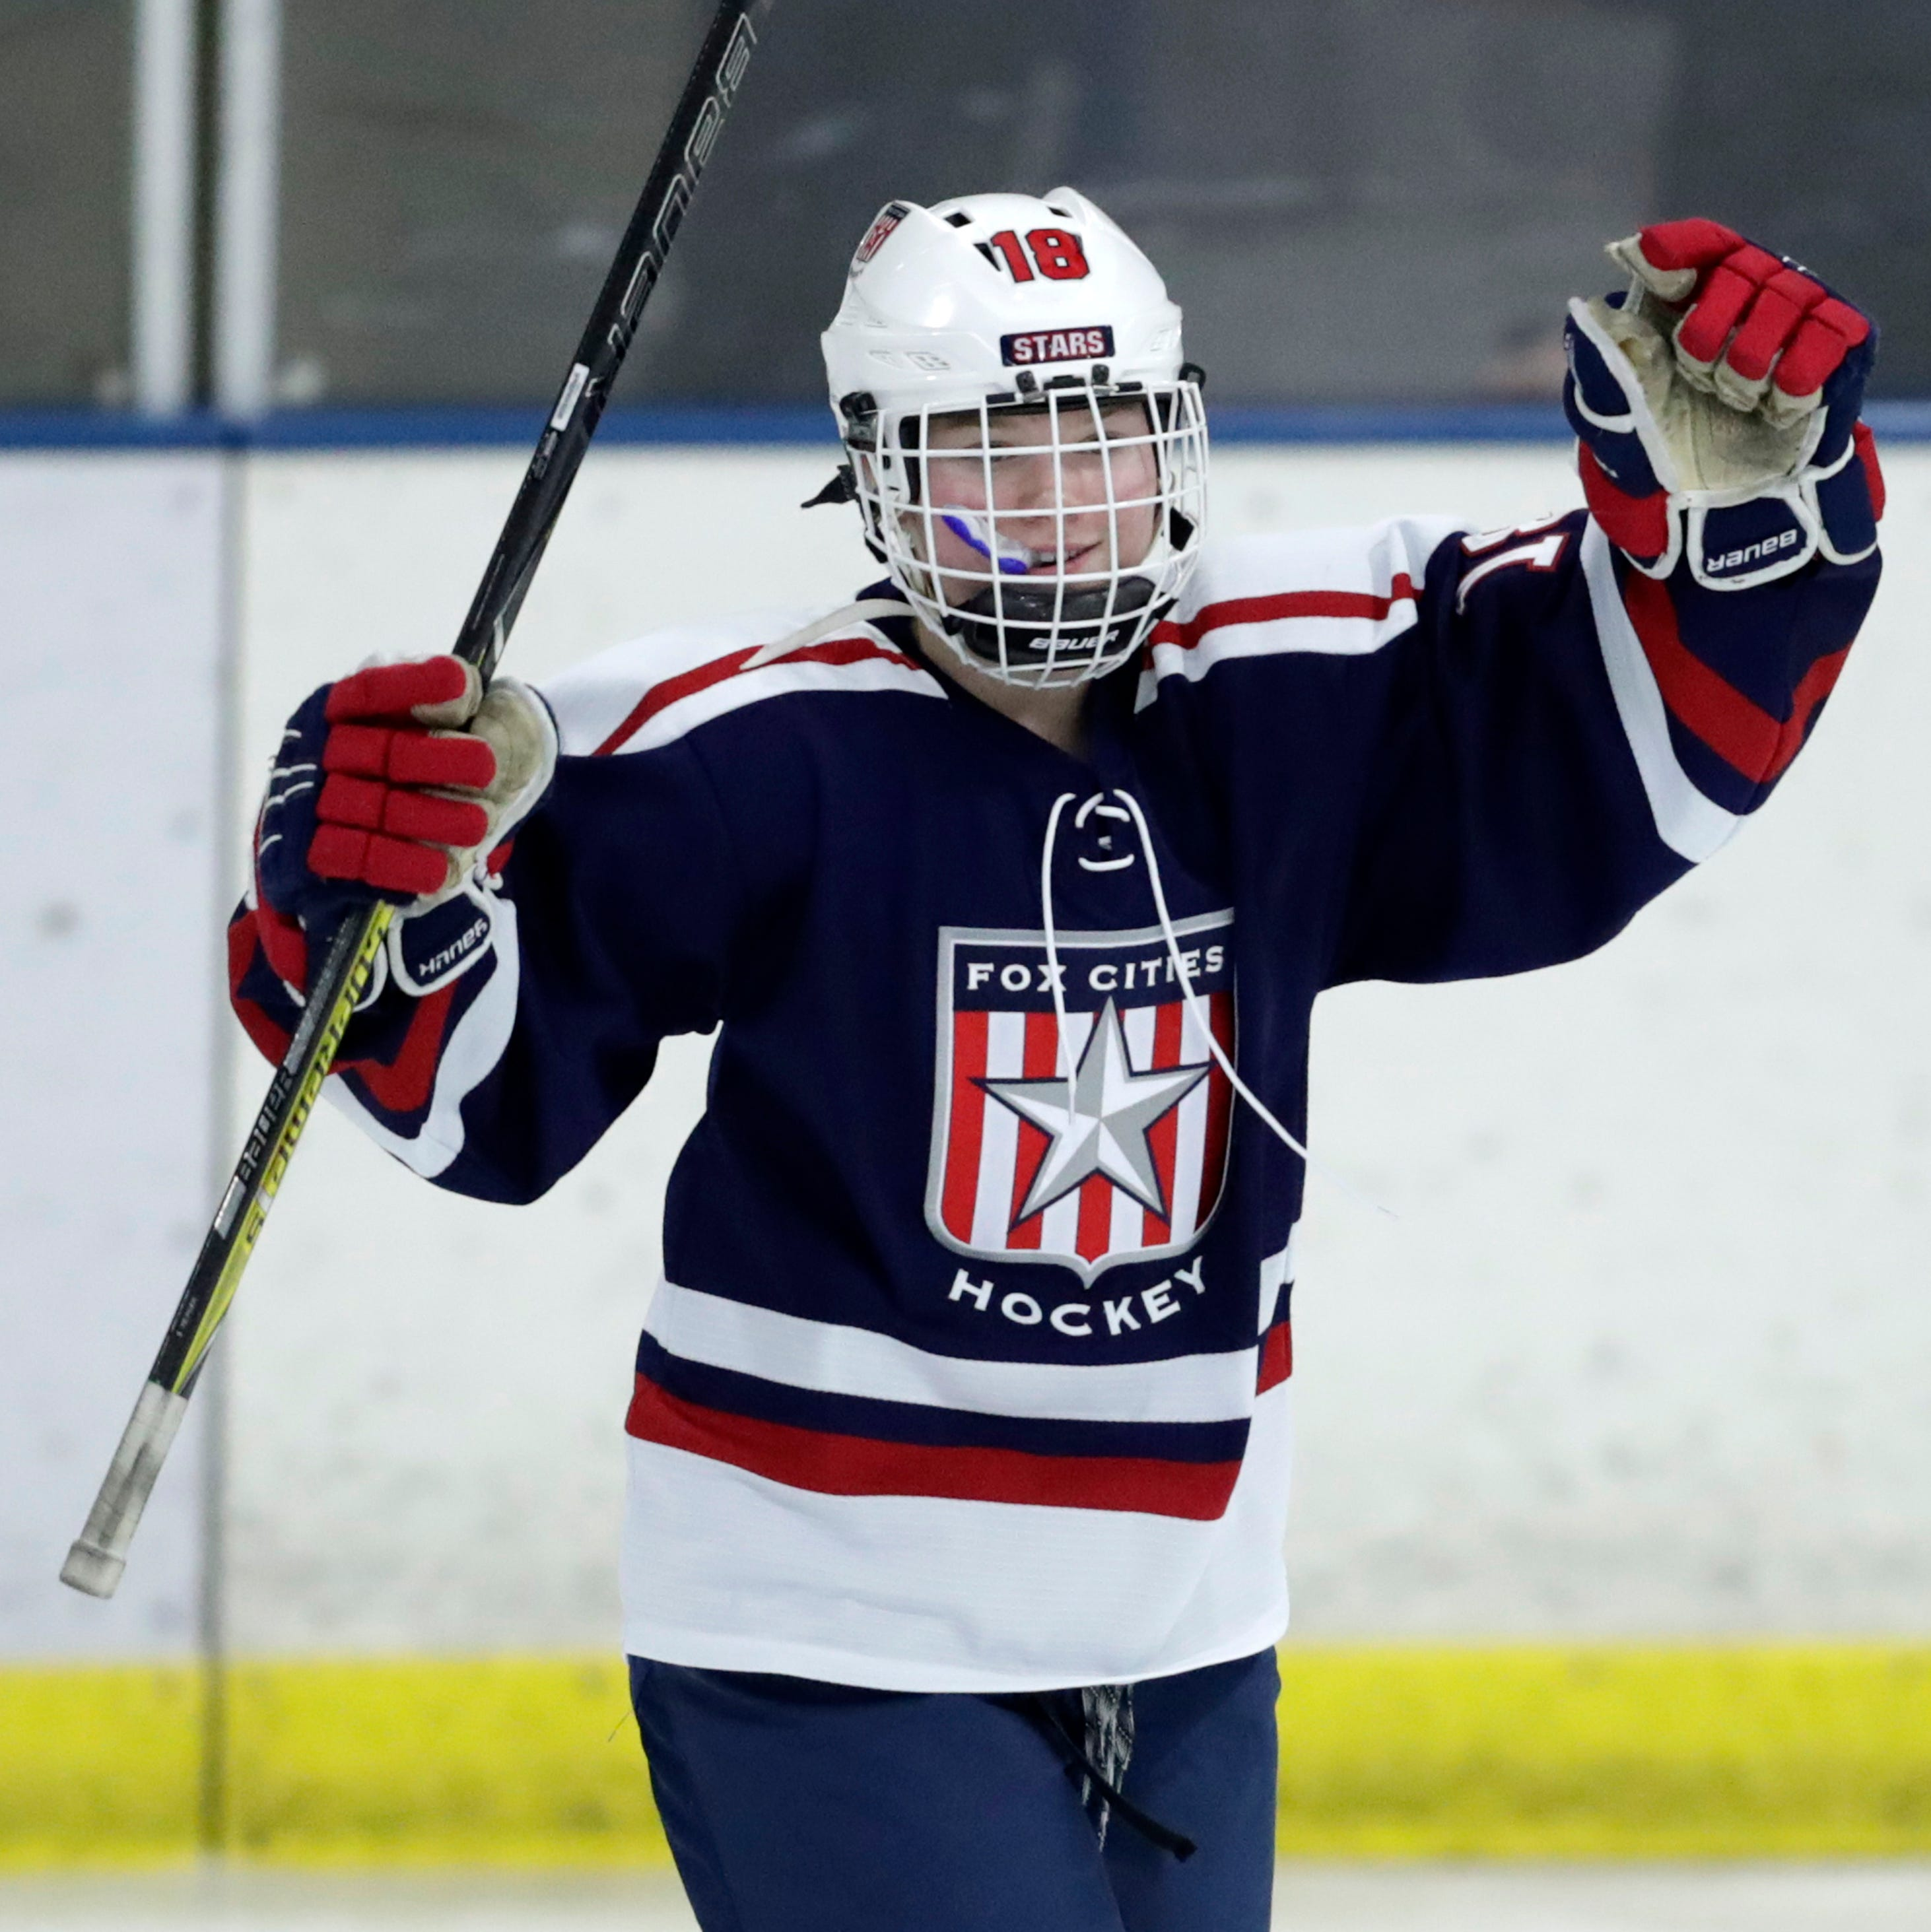 Fox Cities Stars hope to get lift from influx of talent